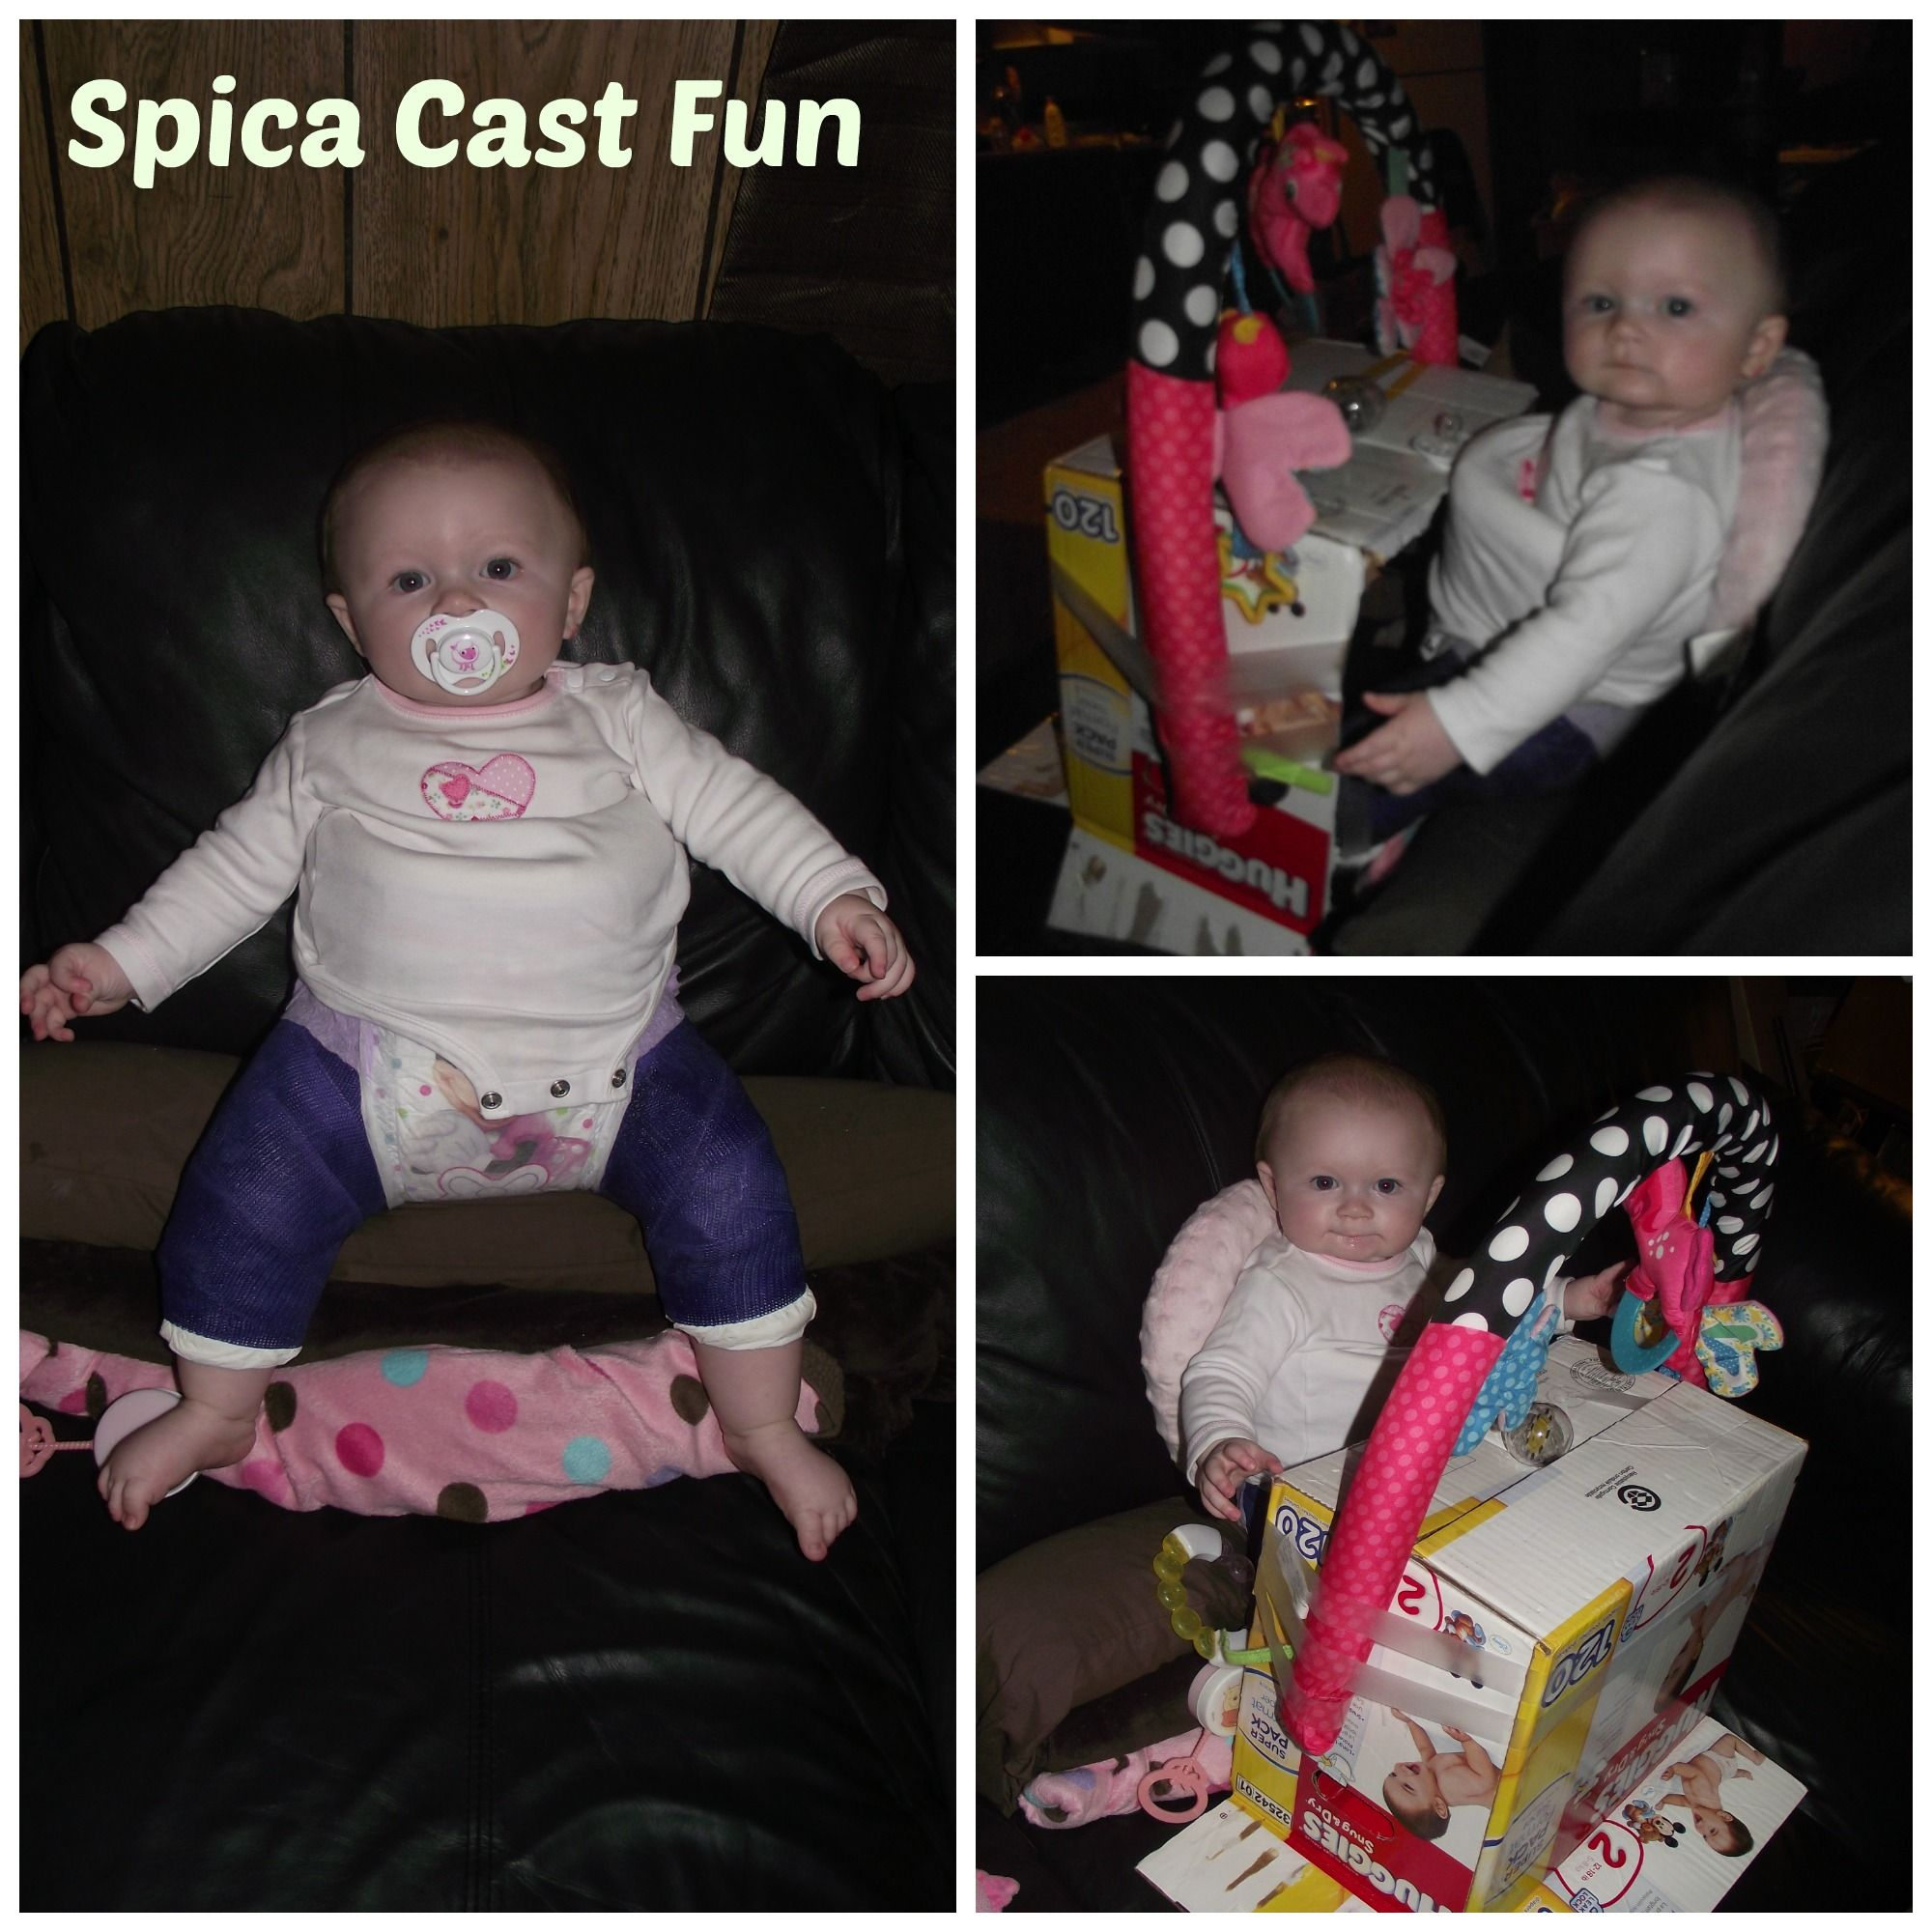 My Daughter Is In A Spica Cast For Hip Dysplasia This What We Came